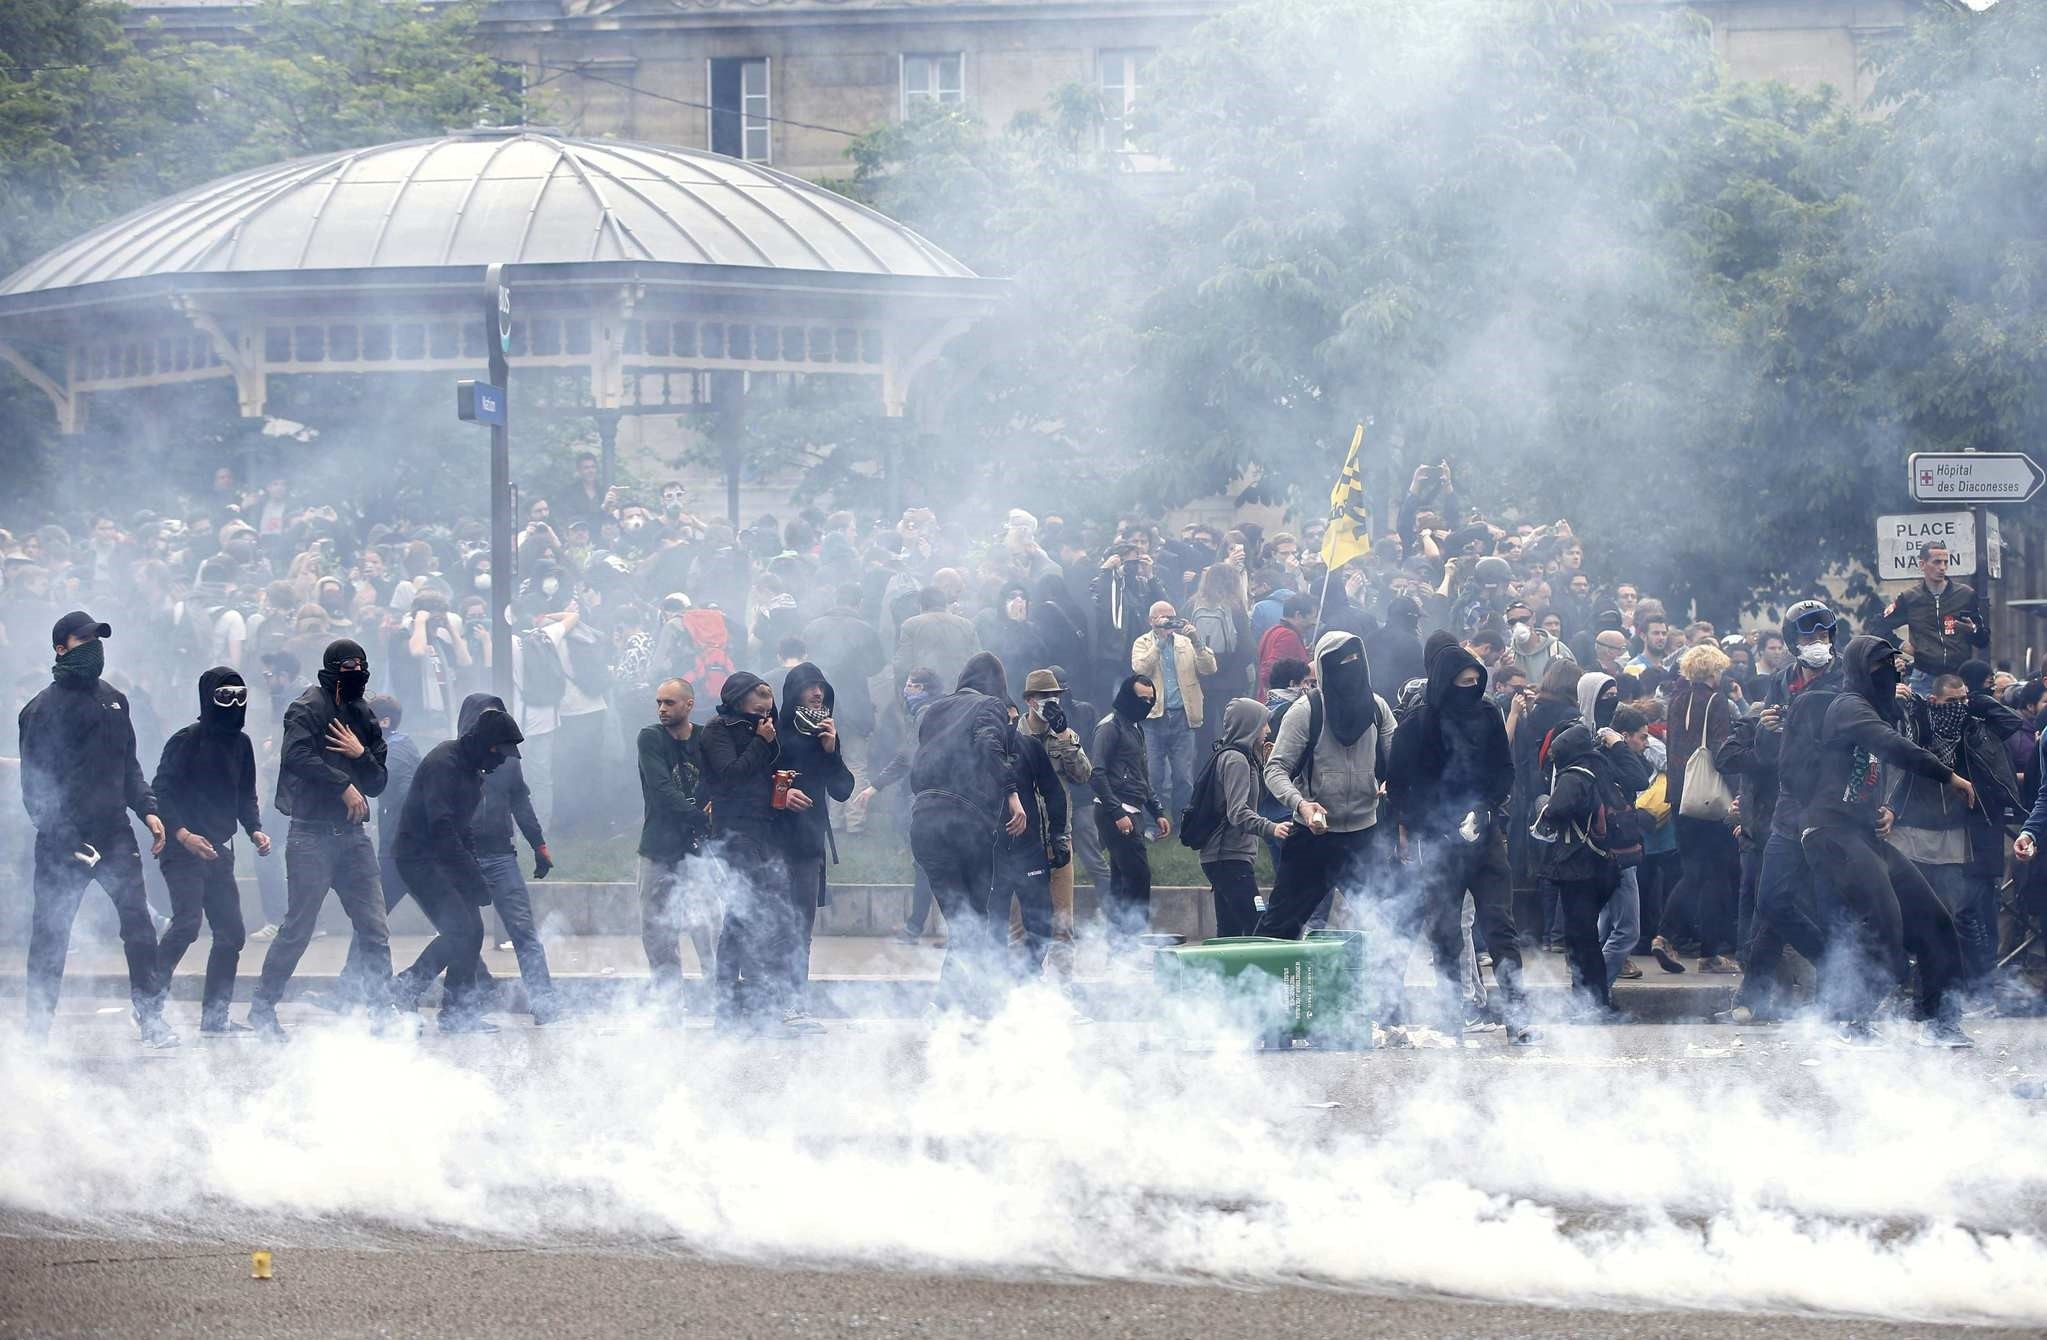 Tear gas fills the air during clashes with French gendarmes during a demonstration in protest of the government's proposed labor law reforms in Paris, France, May 26, 2016. (Reuters Photo)